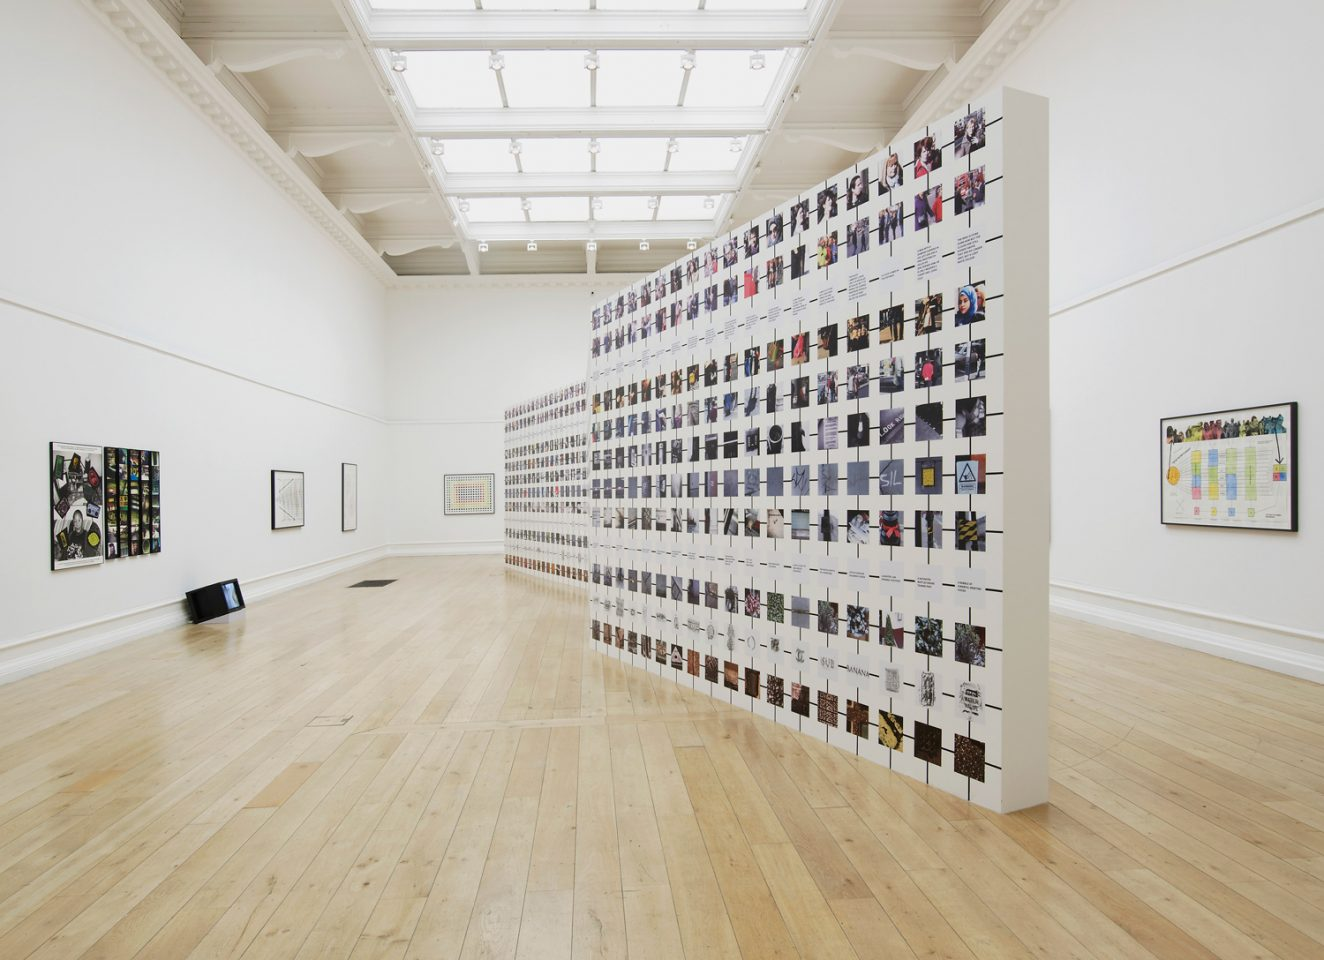 Installation view of a mosaic as part of Stephen Willat's 2012 exhibition People in Pairs in the Main Galleries. Photo: Andy Keate